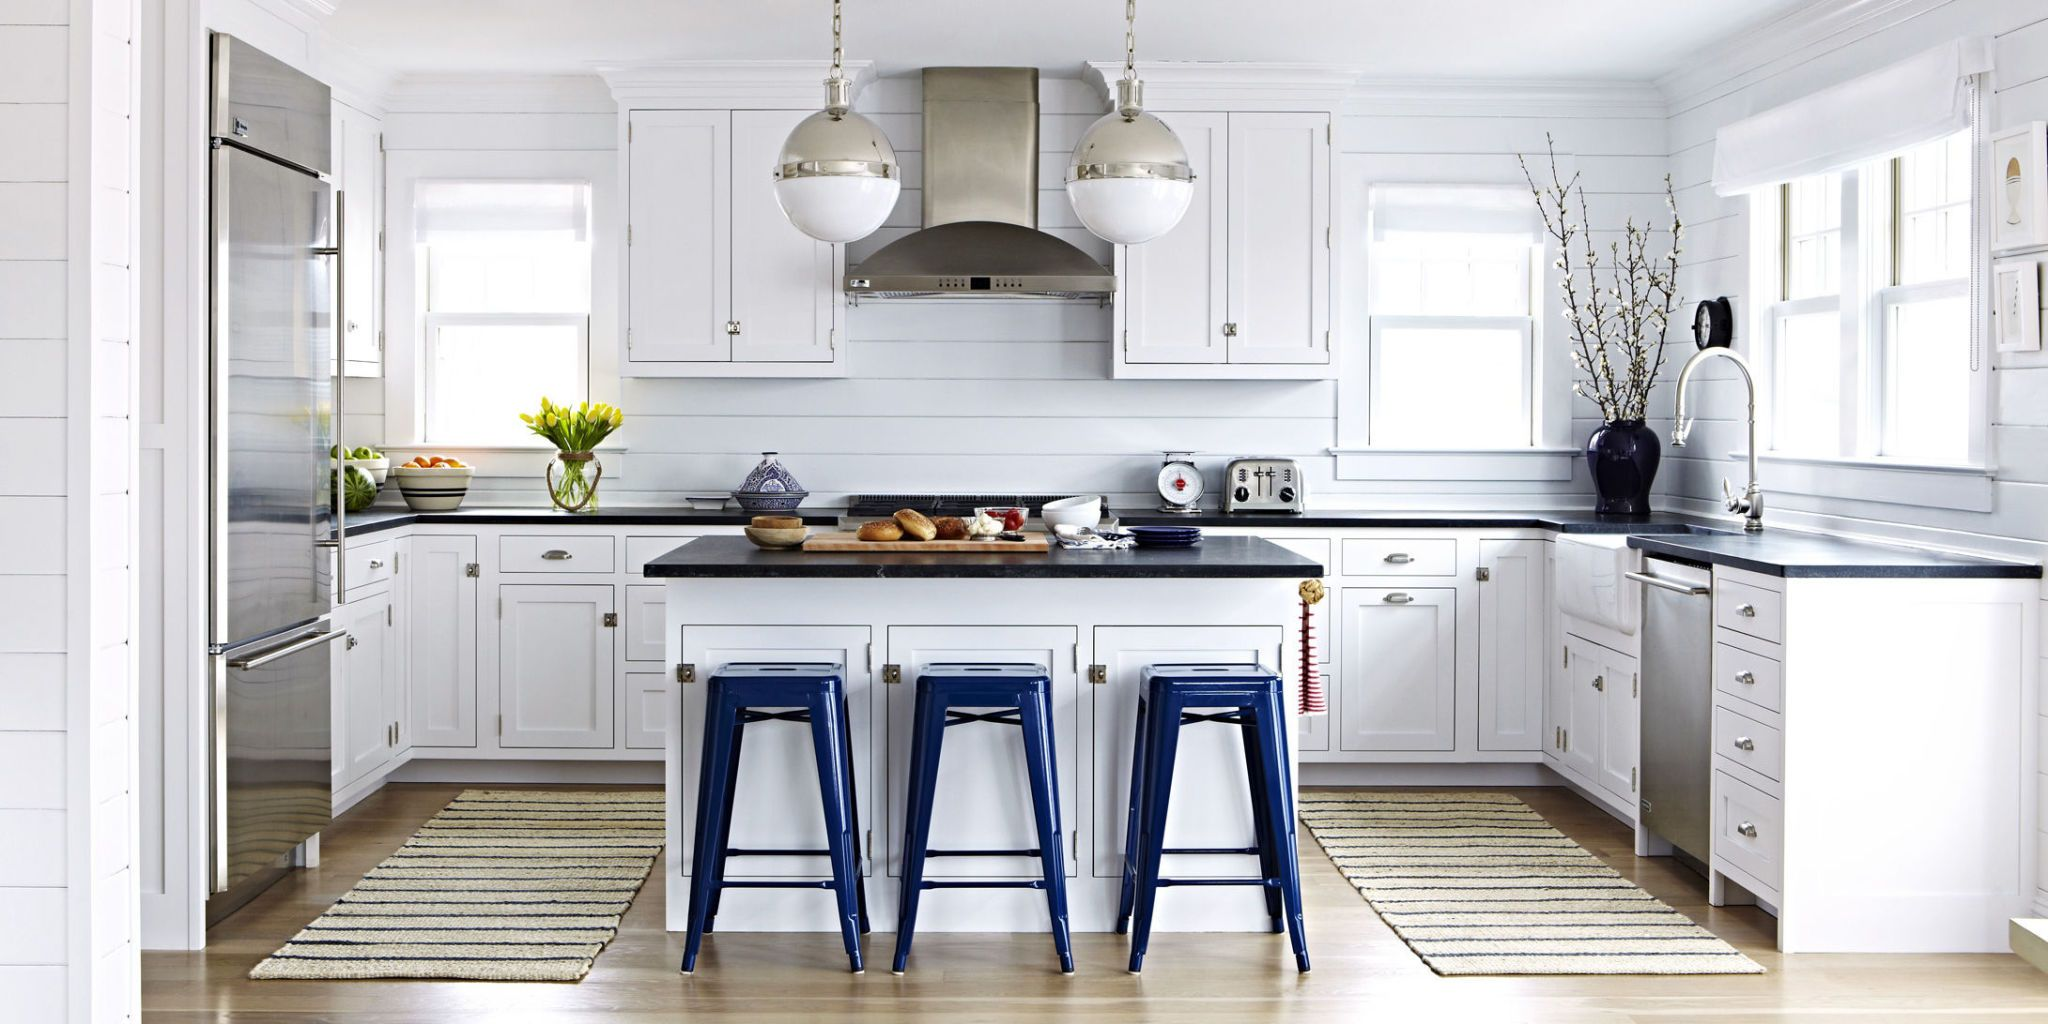 how to decorate your kitchen chairs on rollers 40 best ideas decor and decorating for design